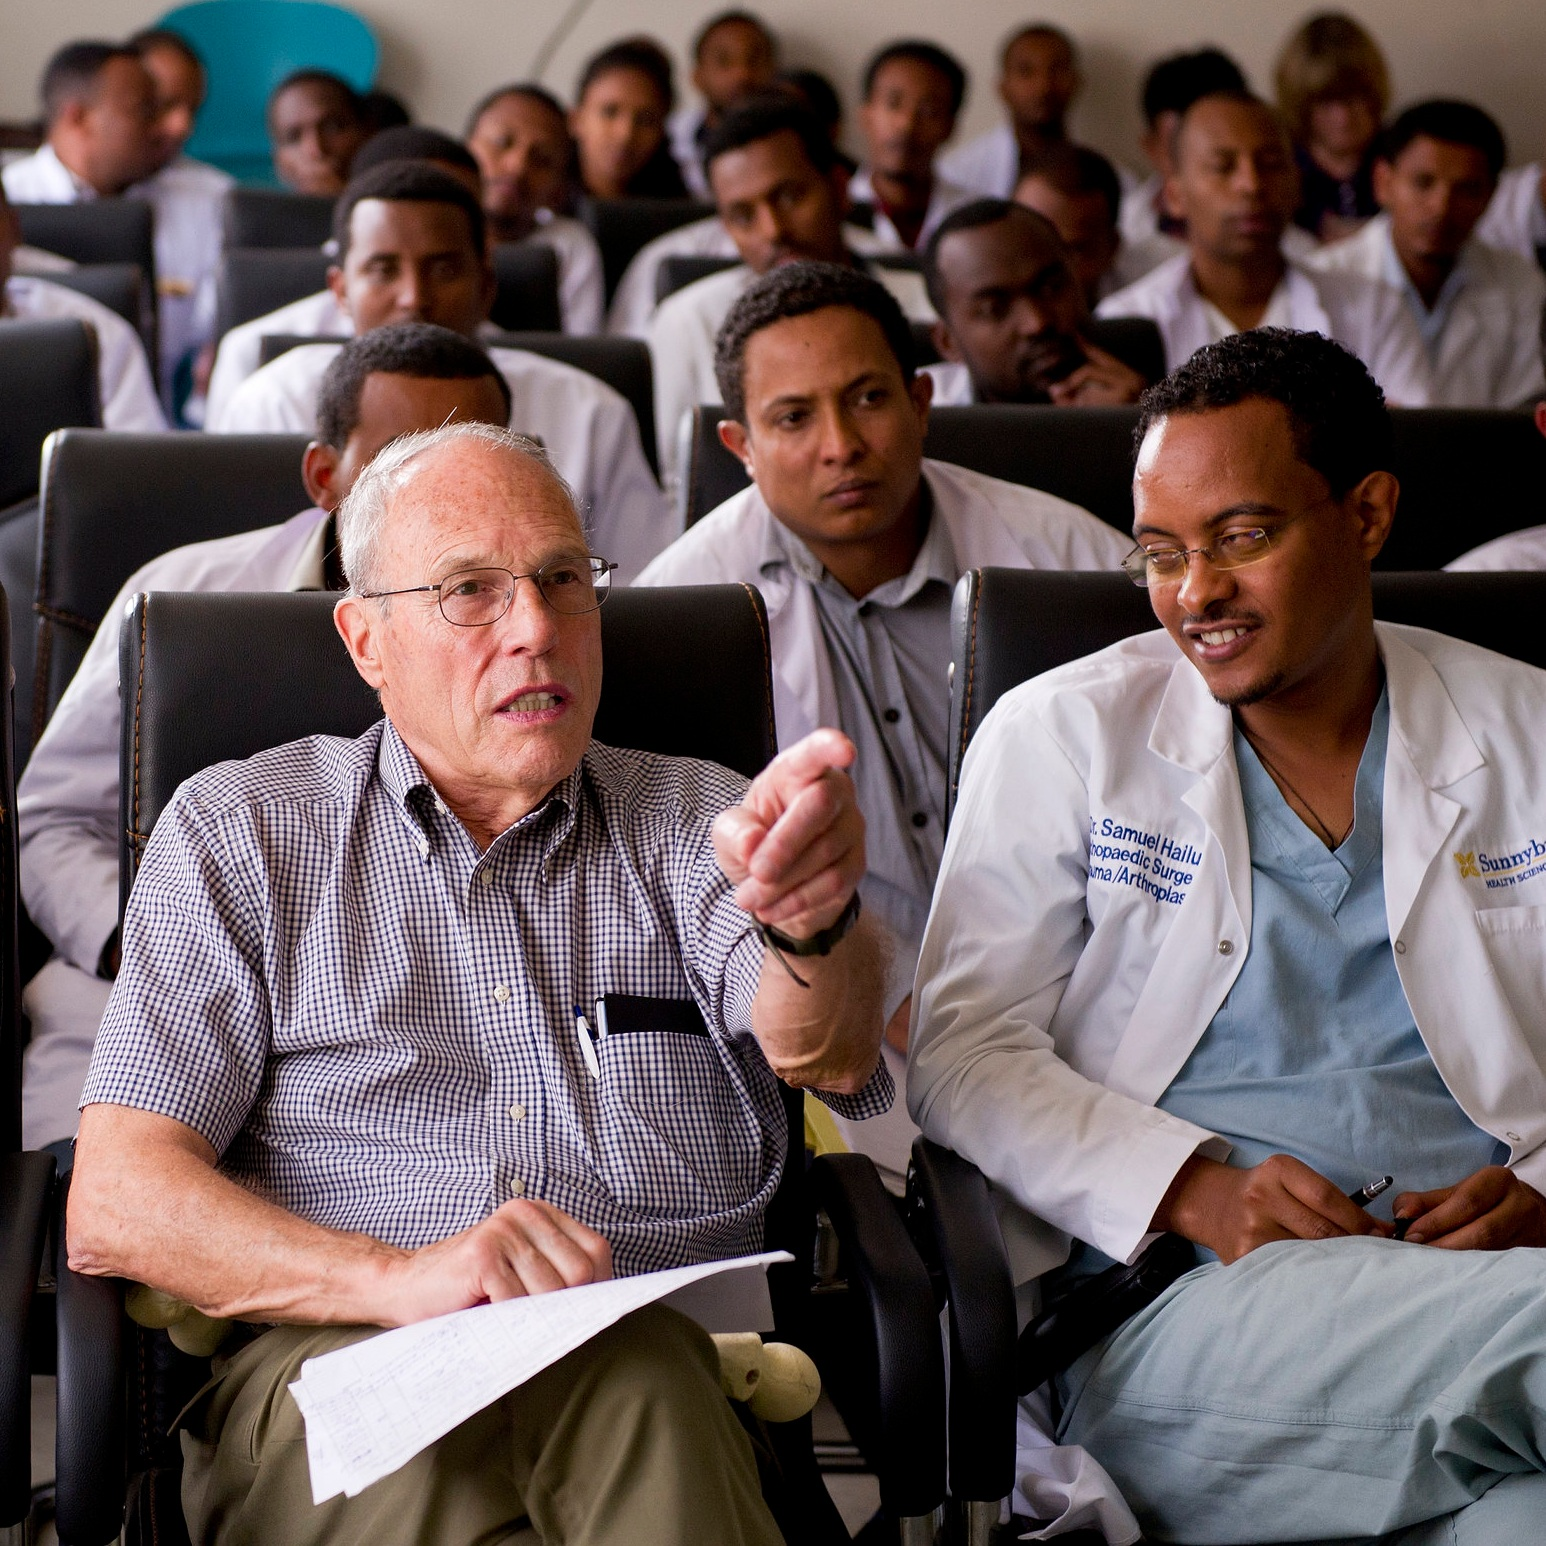 Dr.+Zirkle+seated+lecture.jpg